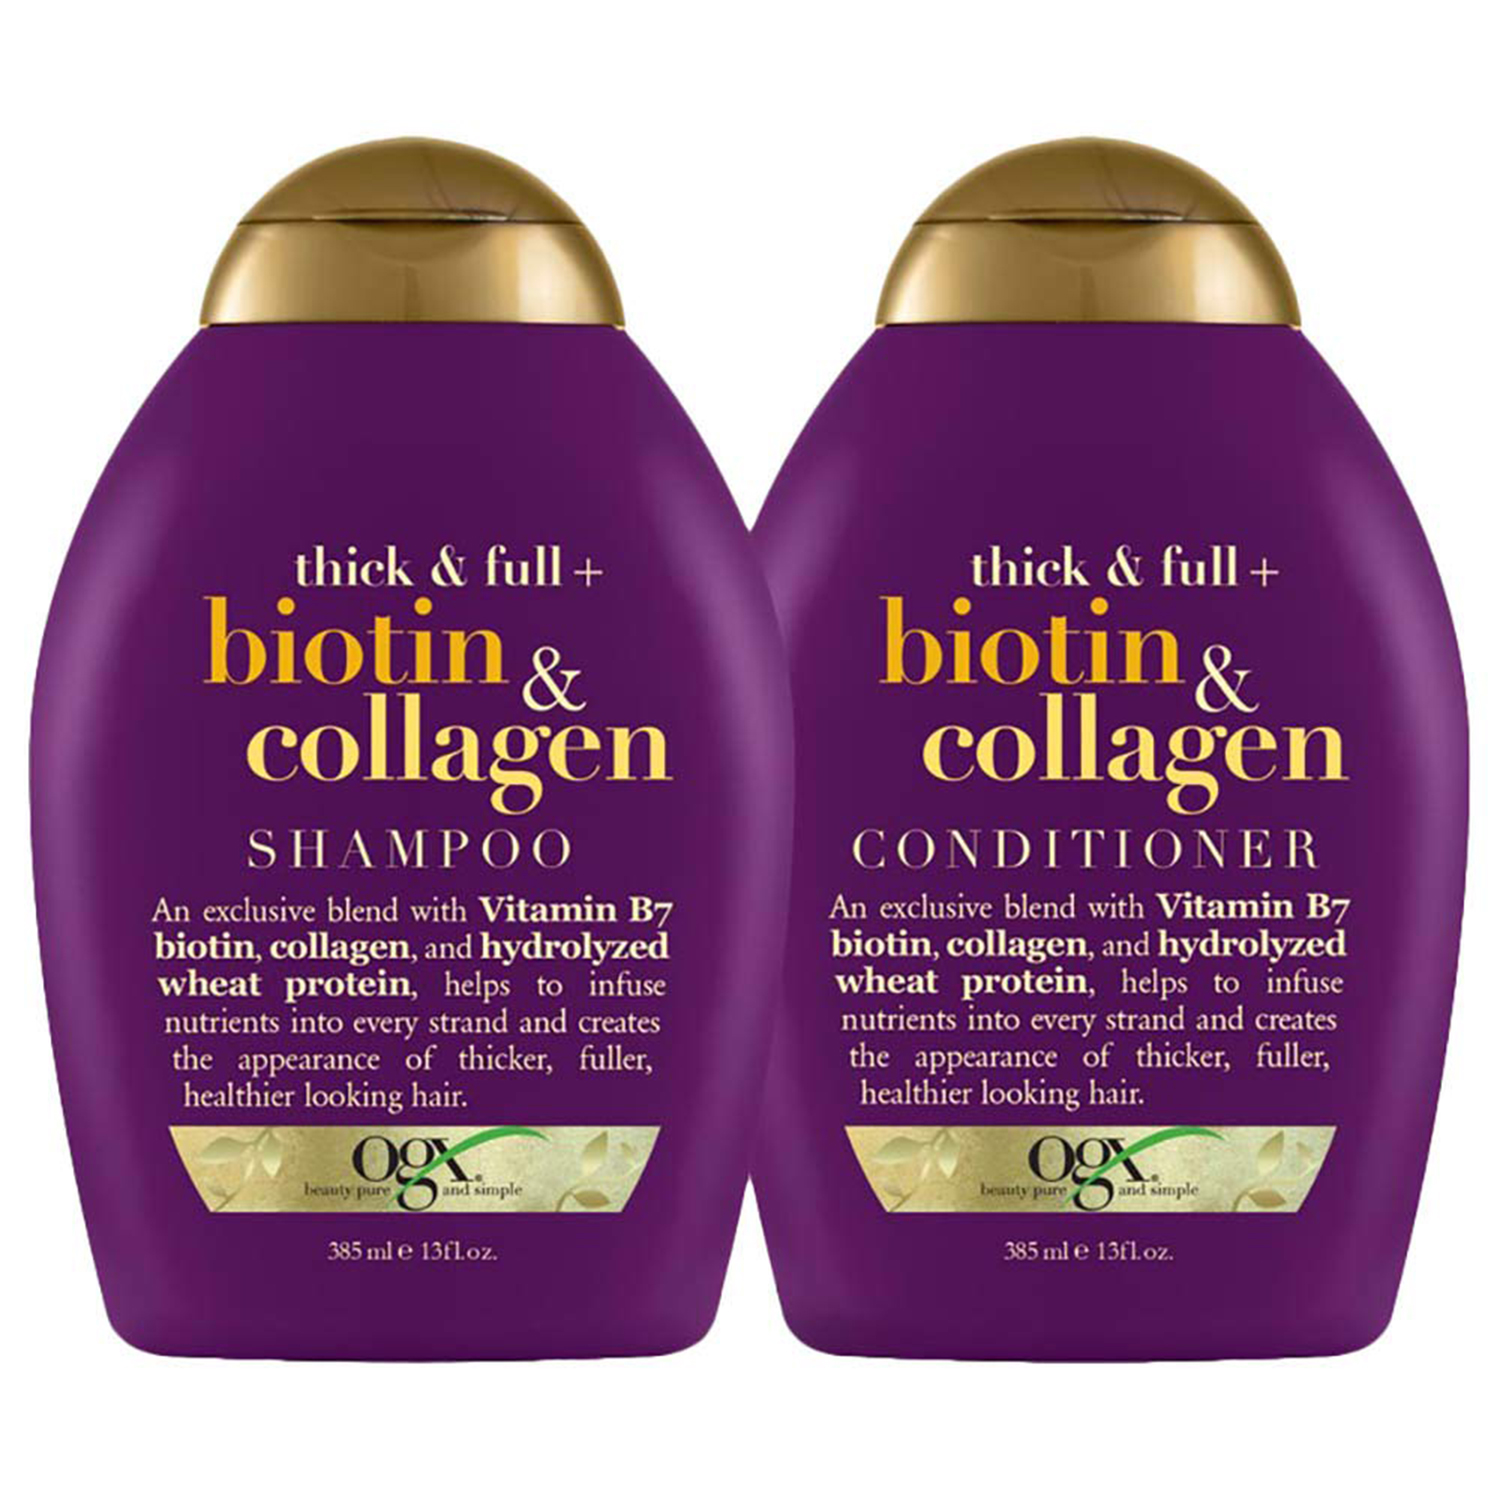 OGX Thick & Full Biotin & Collagen Shampoo (and Conditioner)